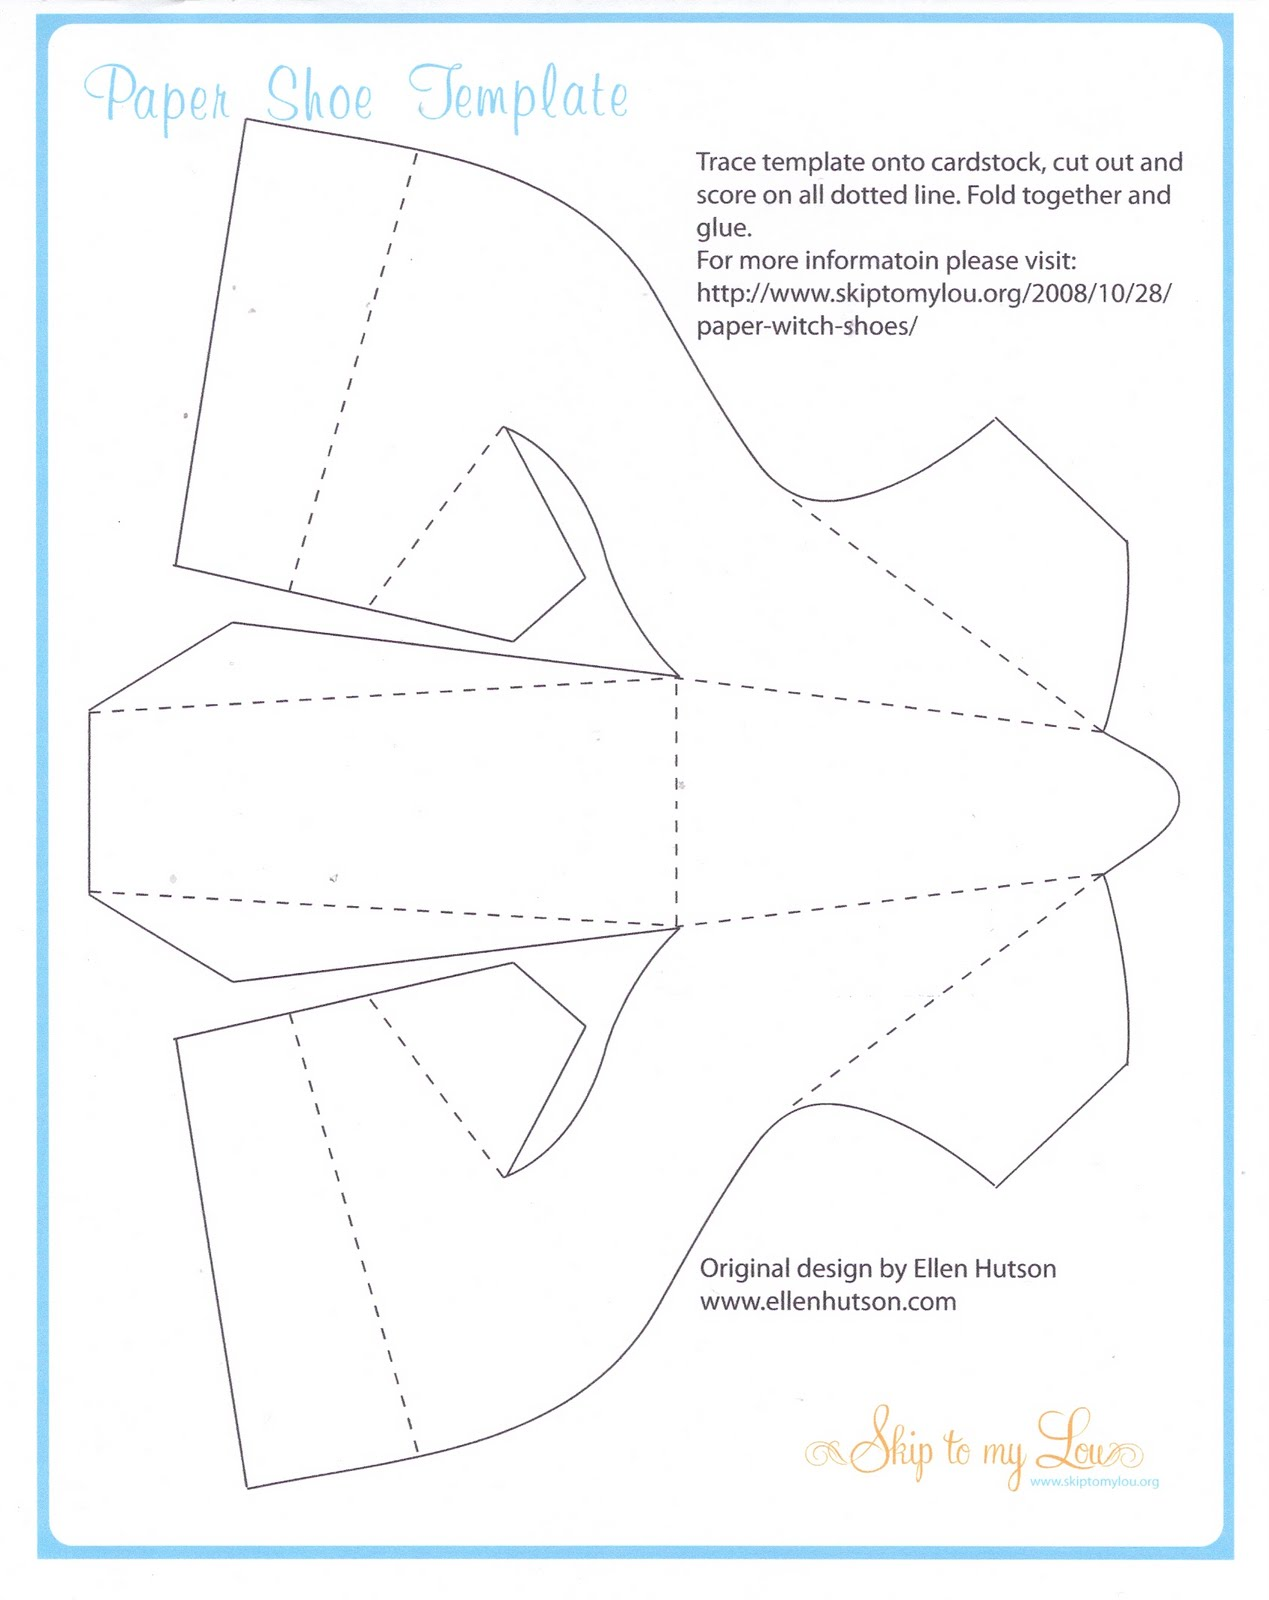 Pinterest the world s catalog of ideas for How to make paper shoes templates